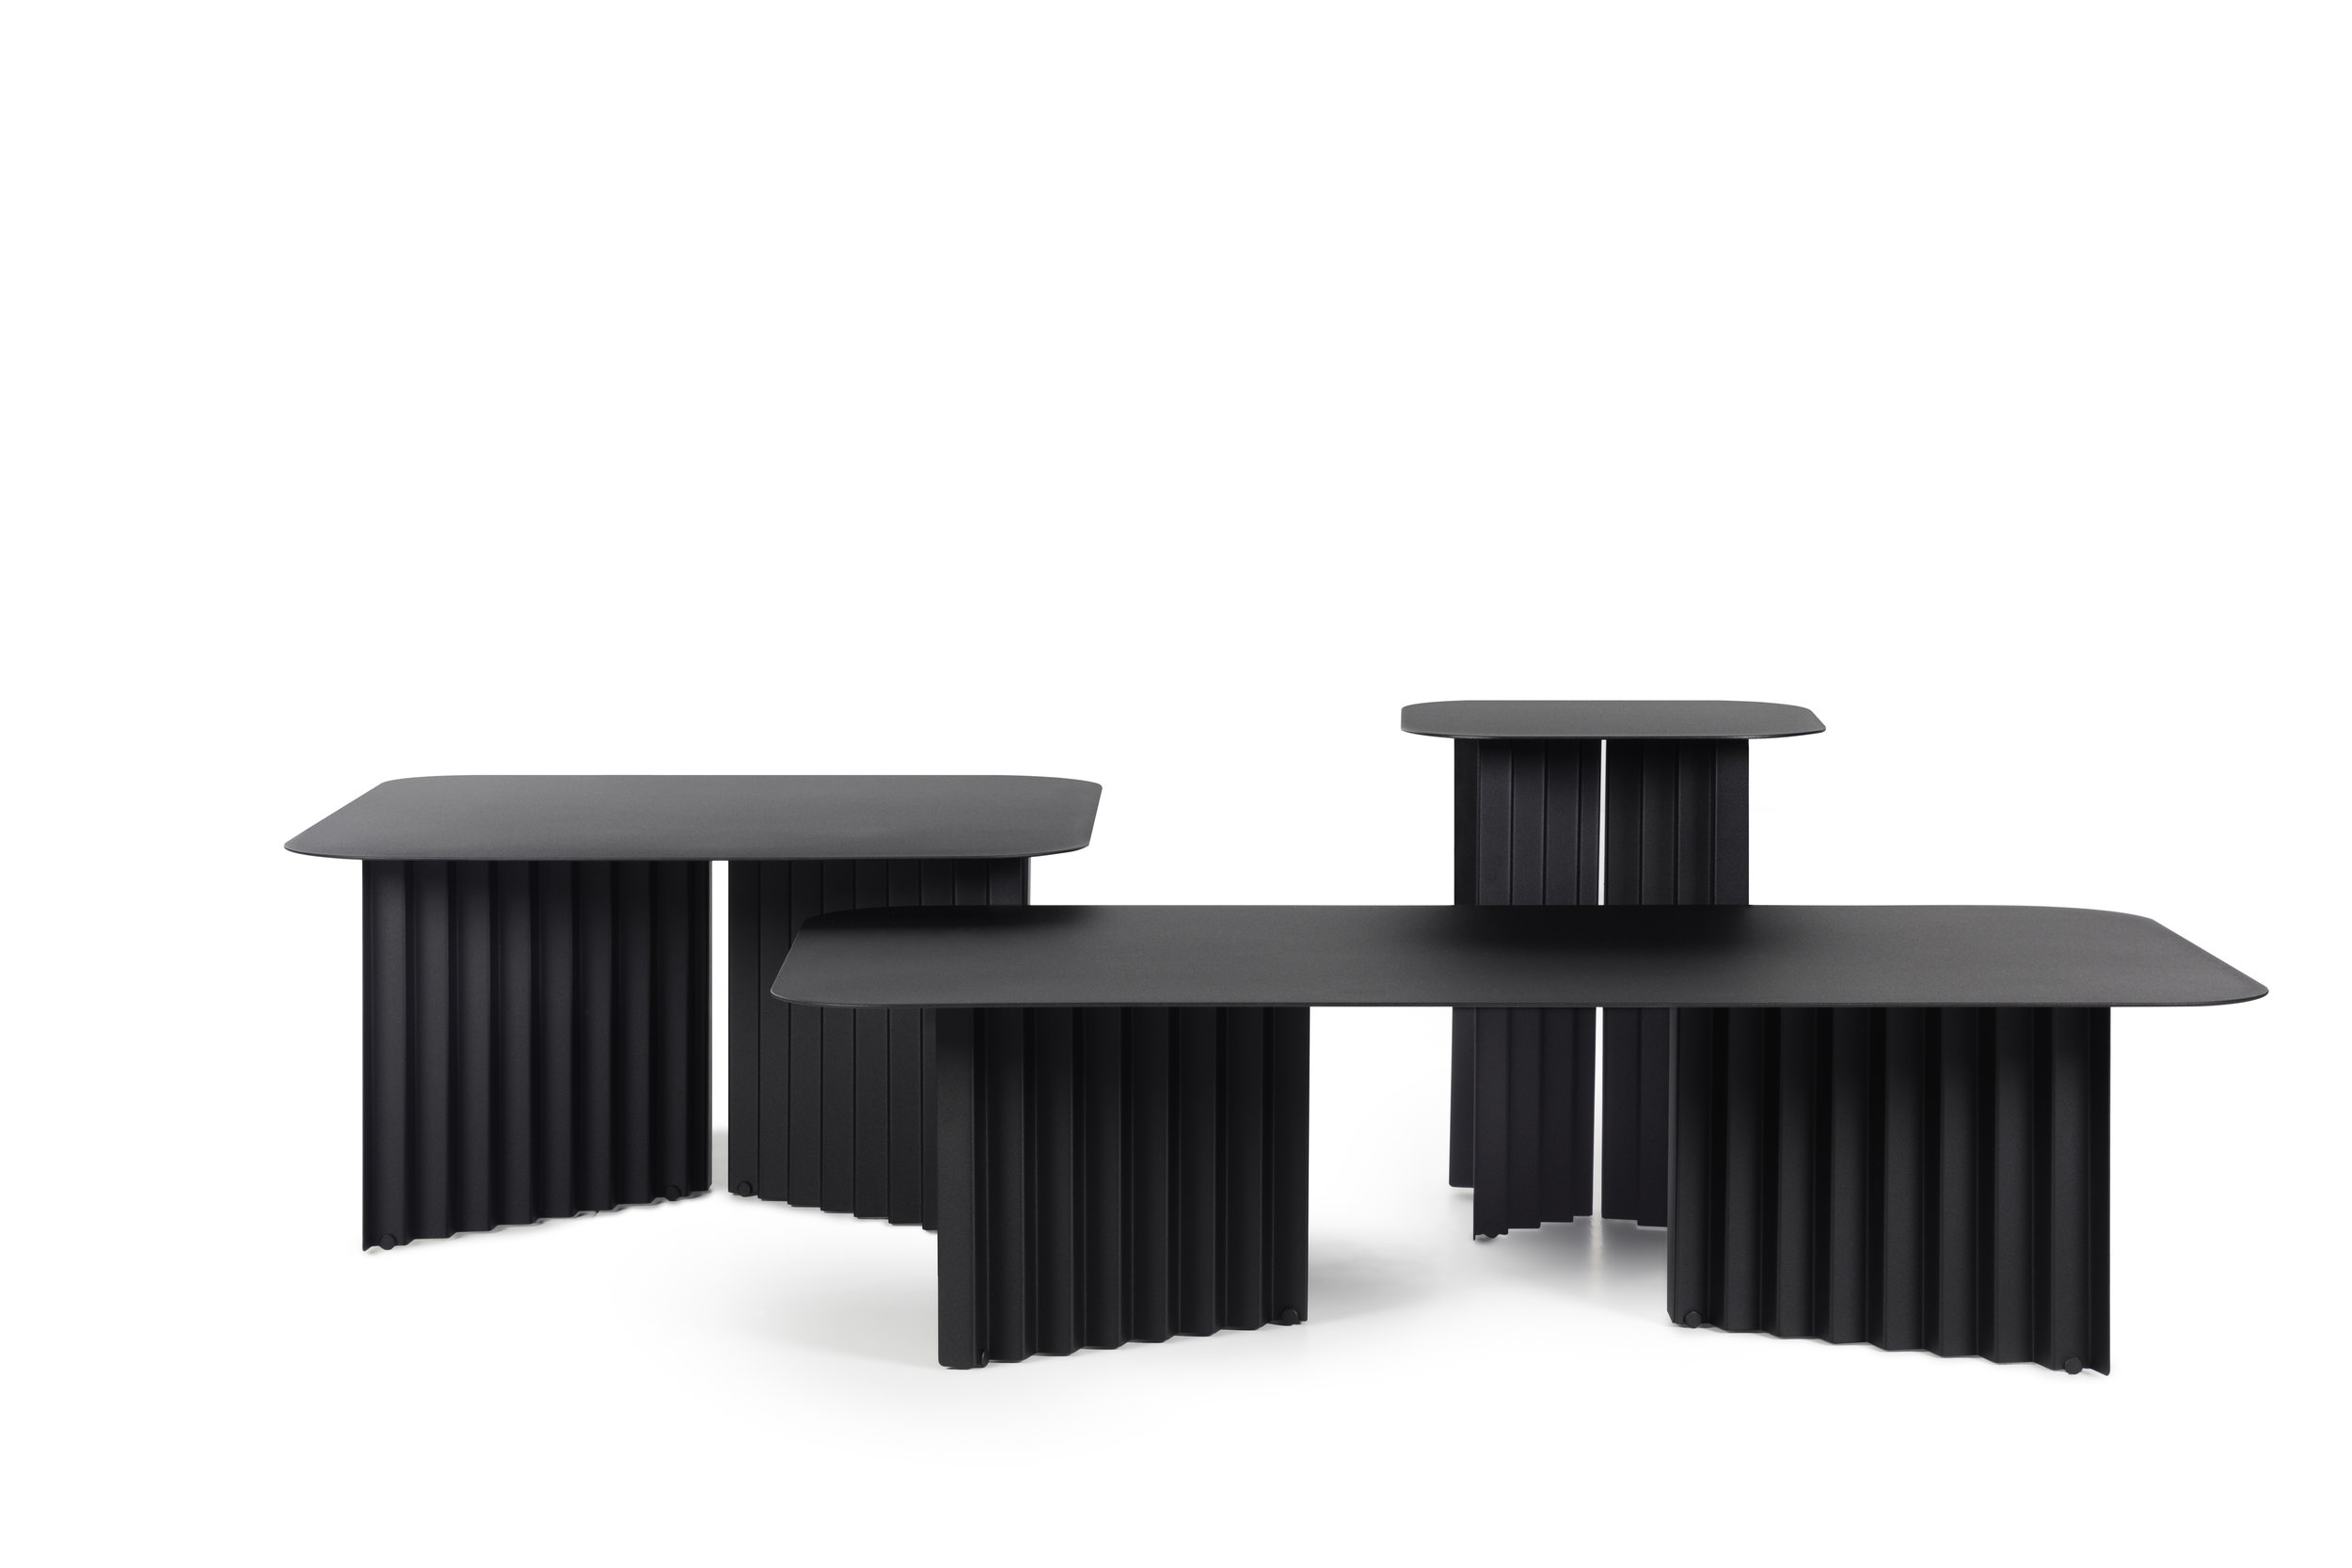 Plec side tables from RS Barcelona